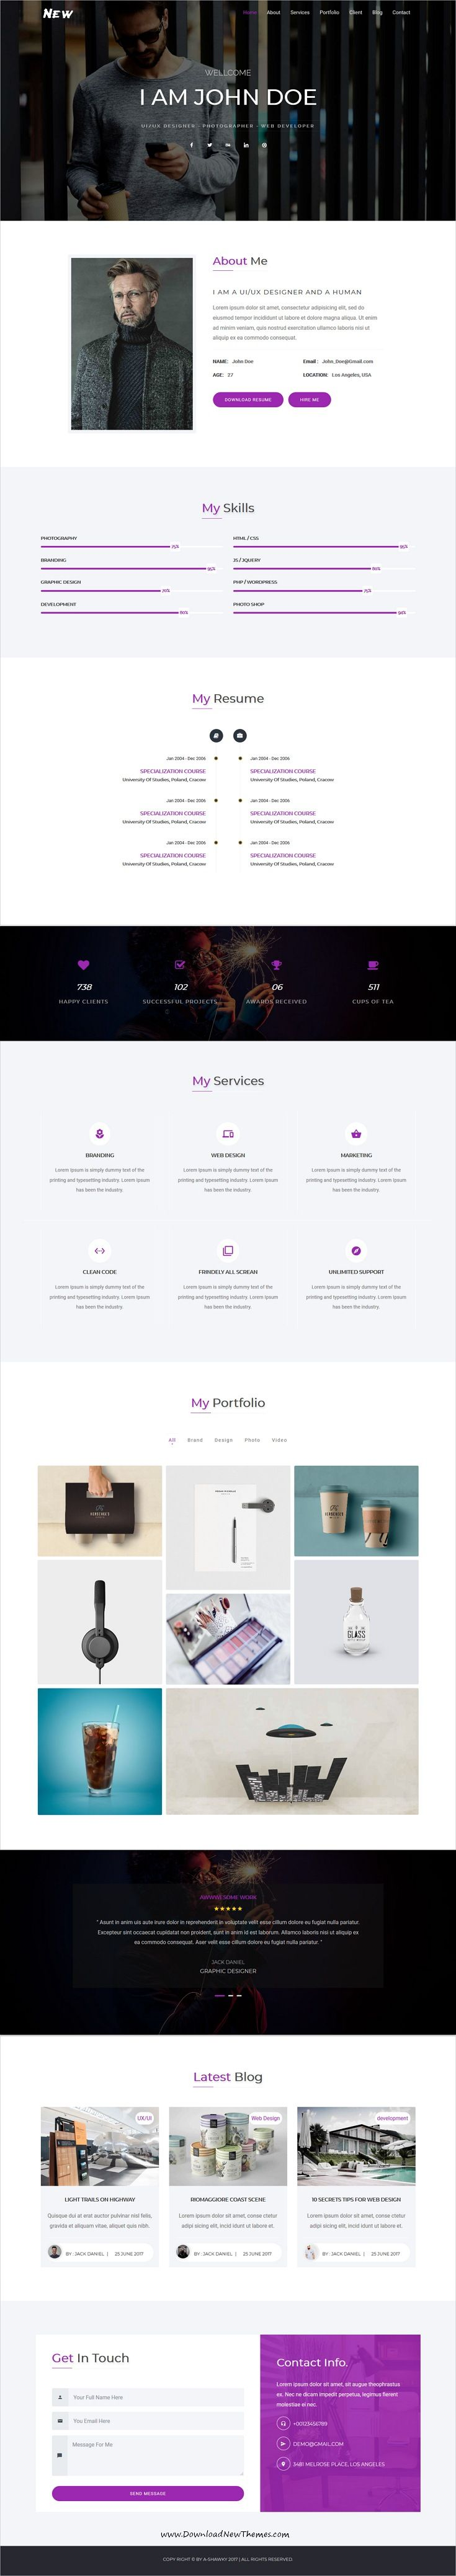 New - One Page Portfolio Template